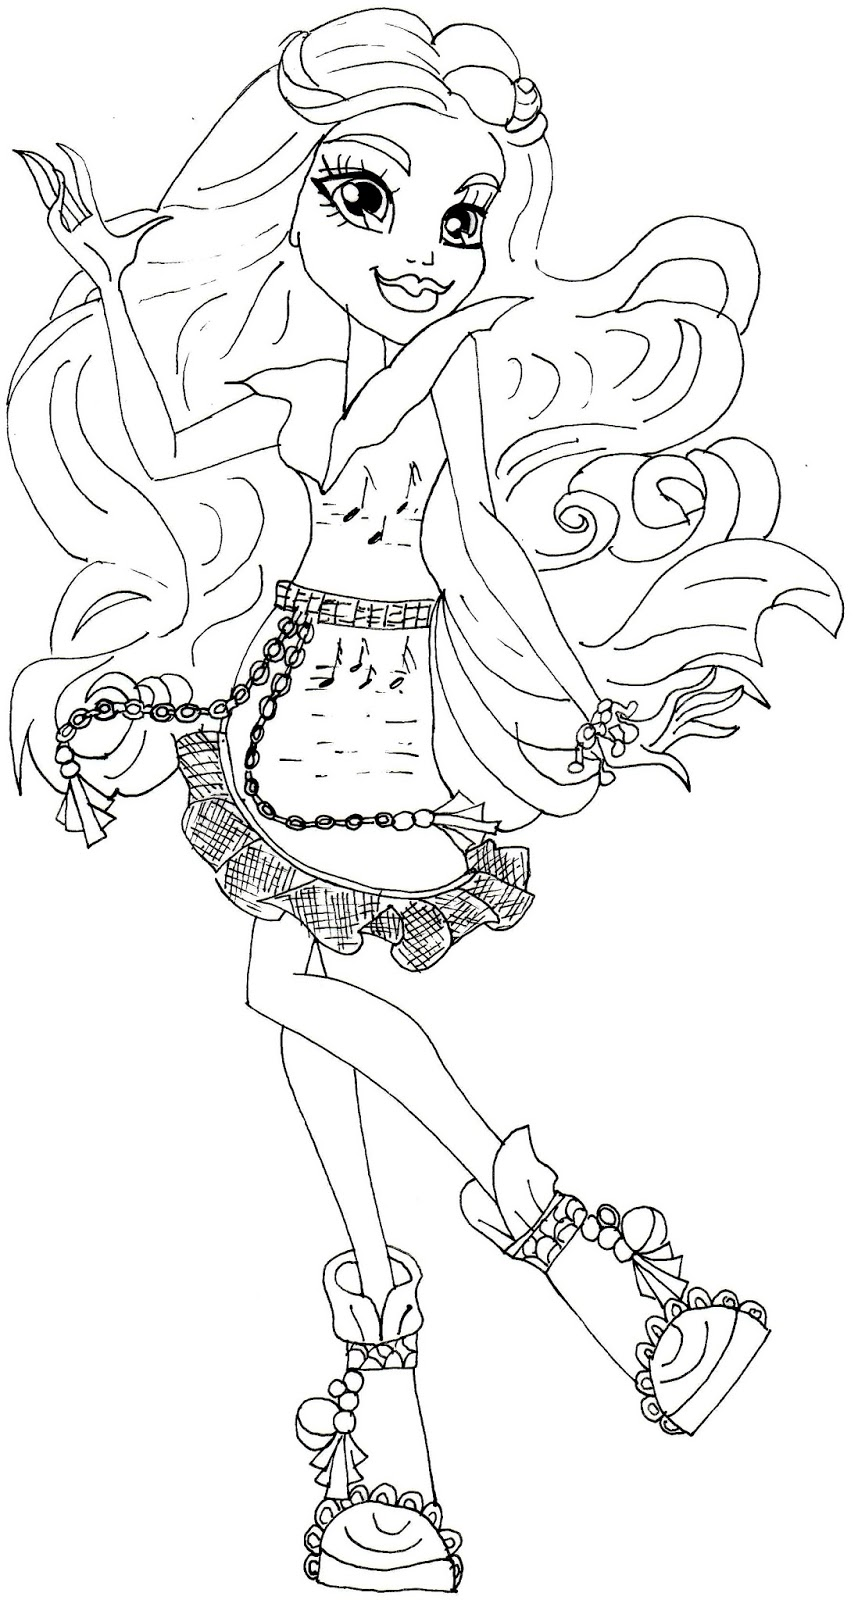 ari hauntington monster high coloring page - Monster High Color Pages Free